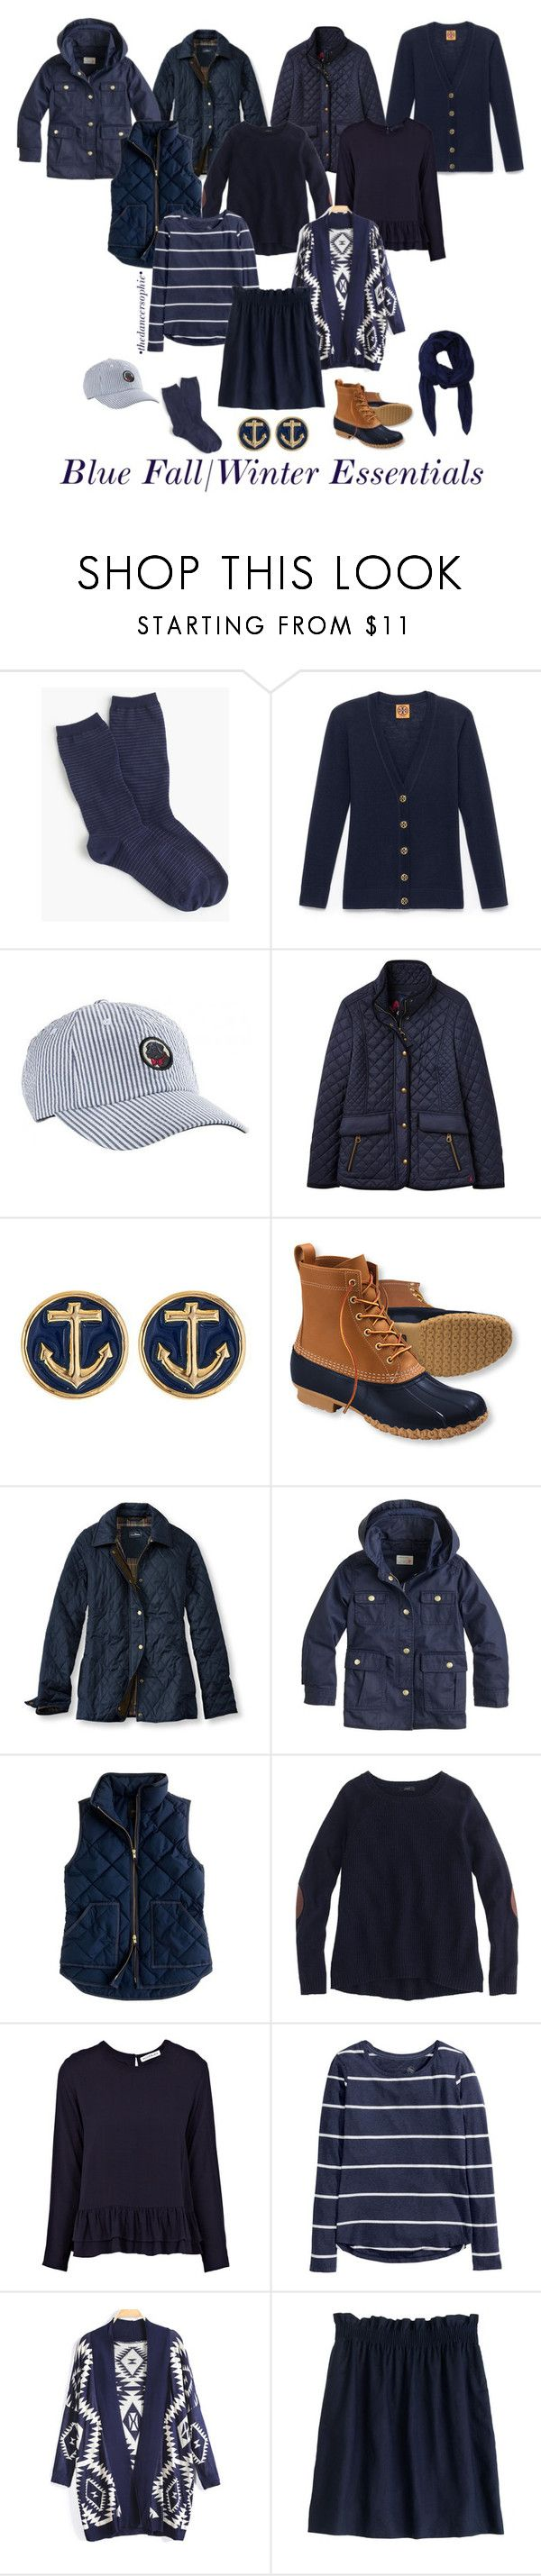 """Preppy fall/winter essentials!!!"" by thedancersophie ❤ liked on Polyvore featuring J.Crew, Tory Burch, Joules, L.L.Bean, Rodebjer, H&M, Alexander McQueen and stopcopyingpreps"